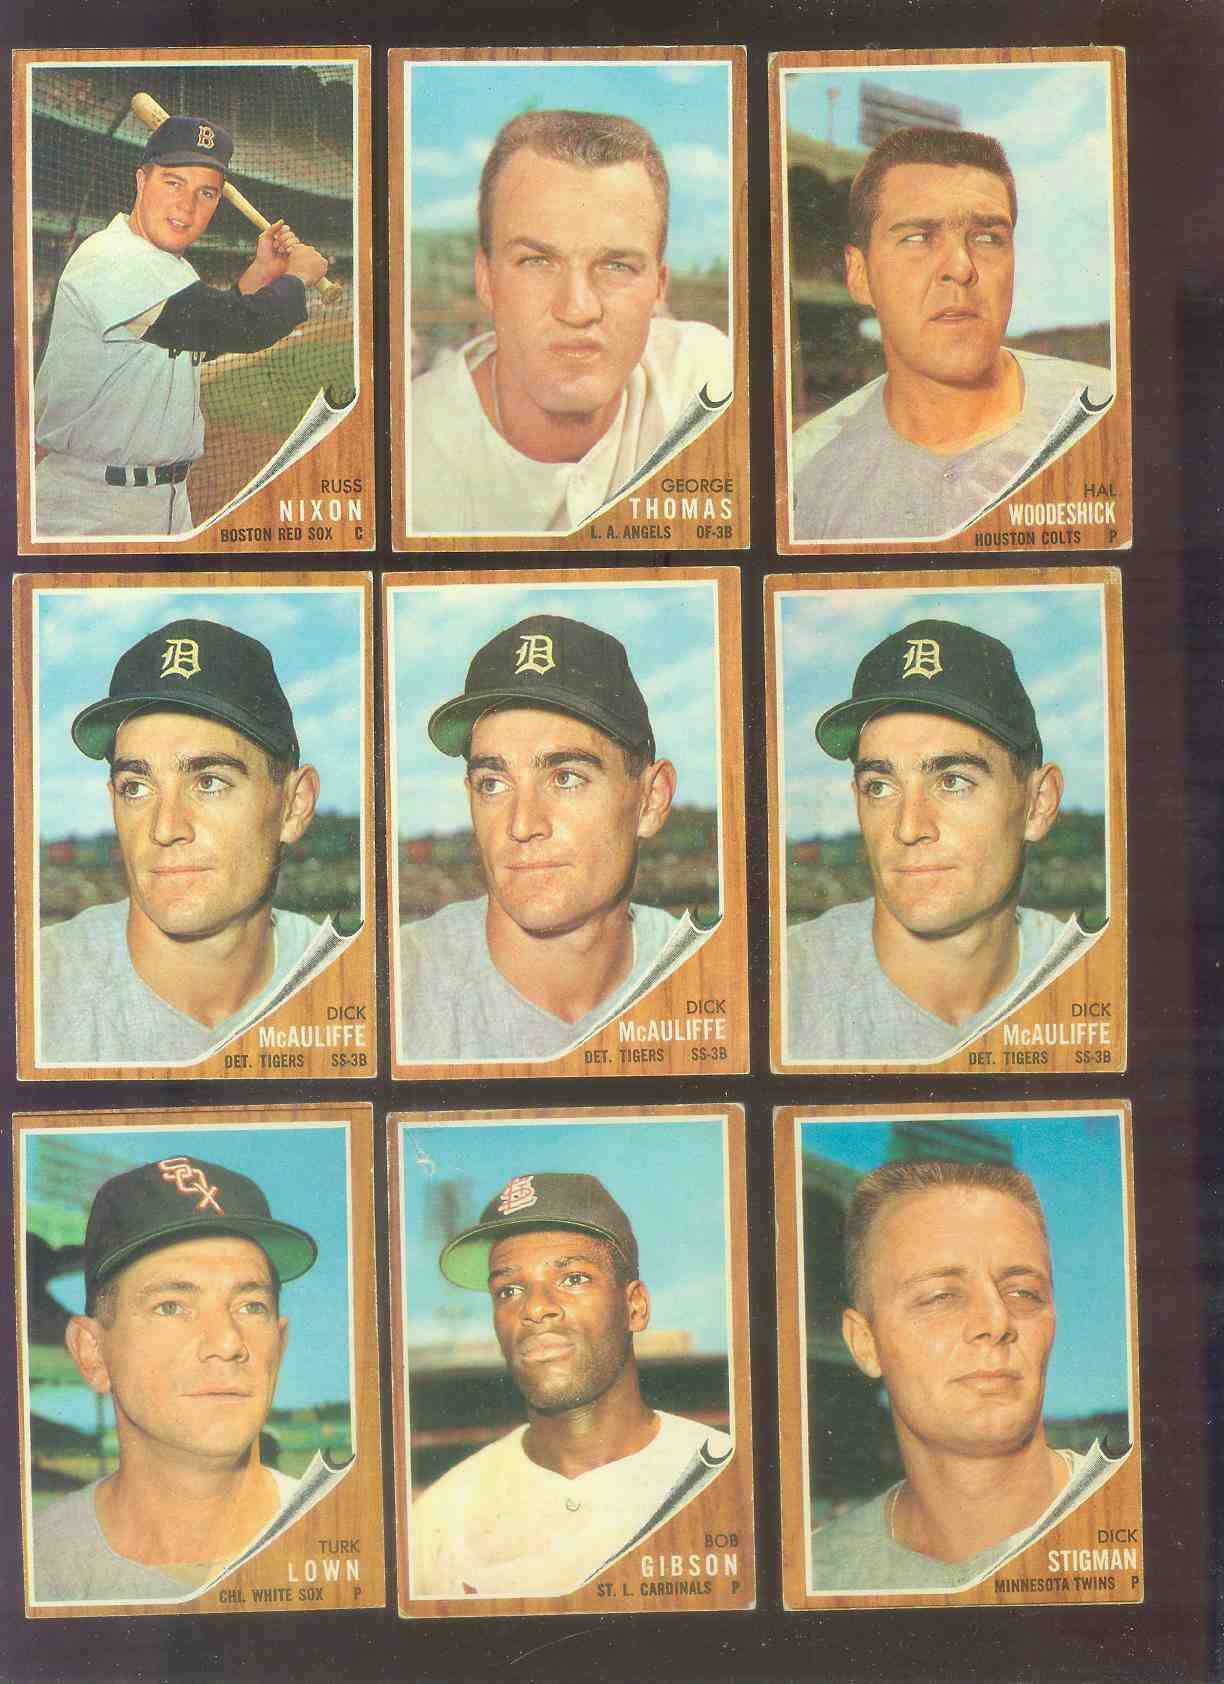 1962 Topps #527 Dick McAuliffe ROOKIE HIGH #.(Tigers) Baseball cards value